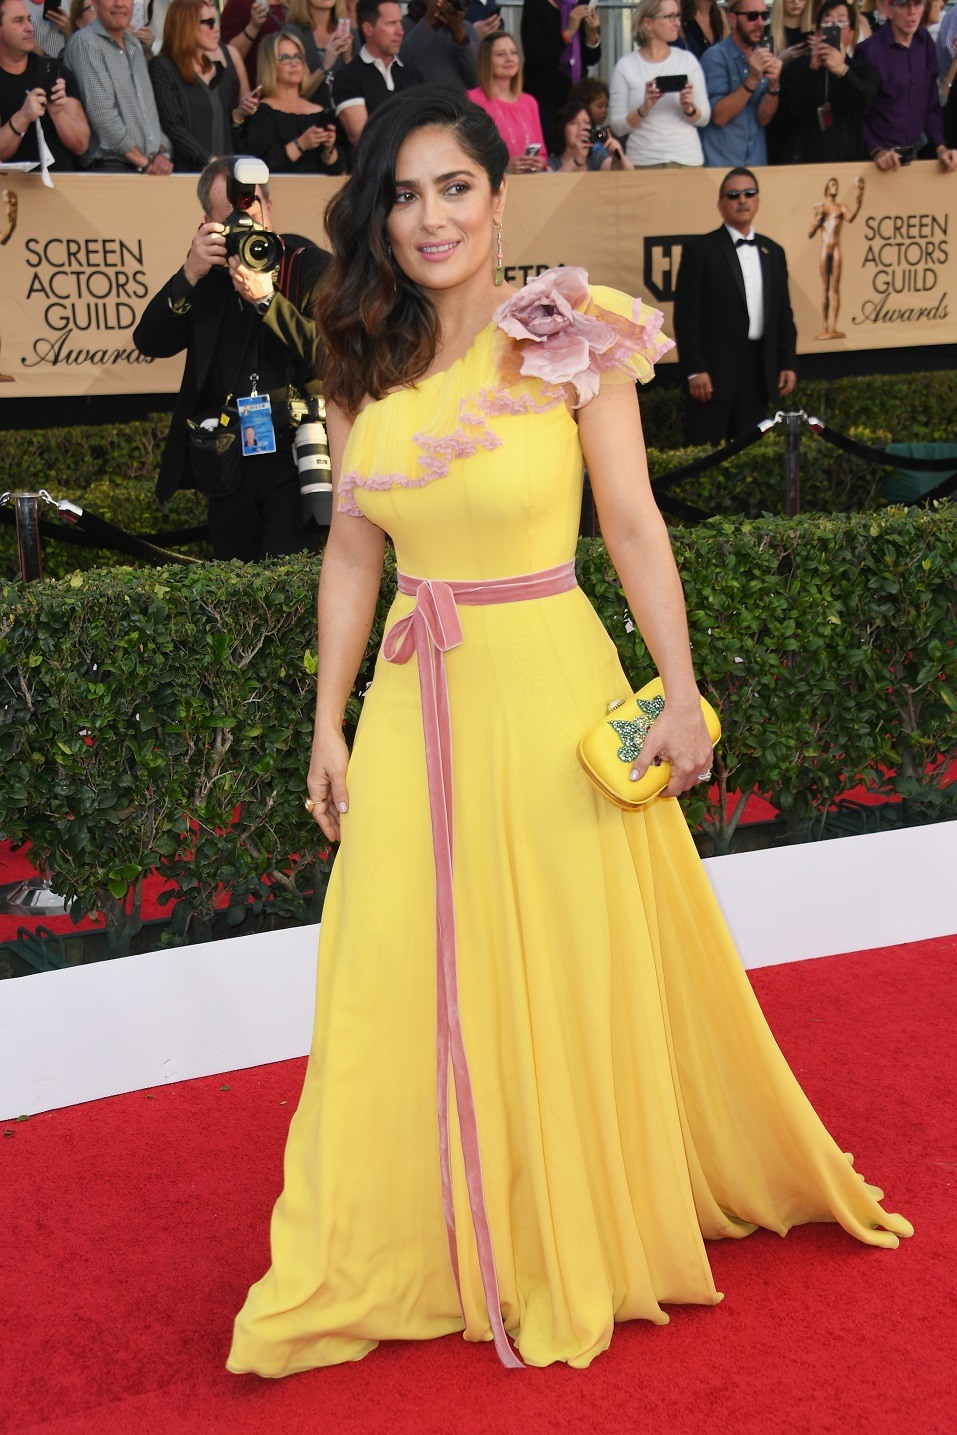 Actor Salma Hayek attends the 23rd Annual Screen Actors Guild Awards